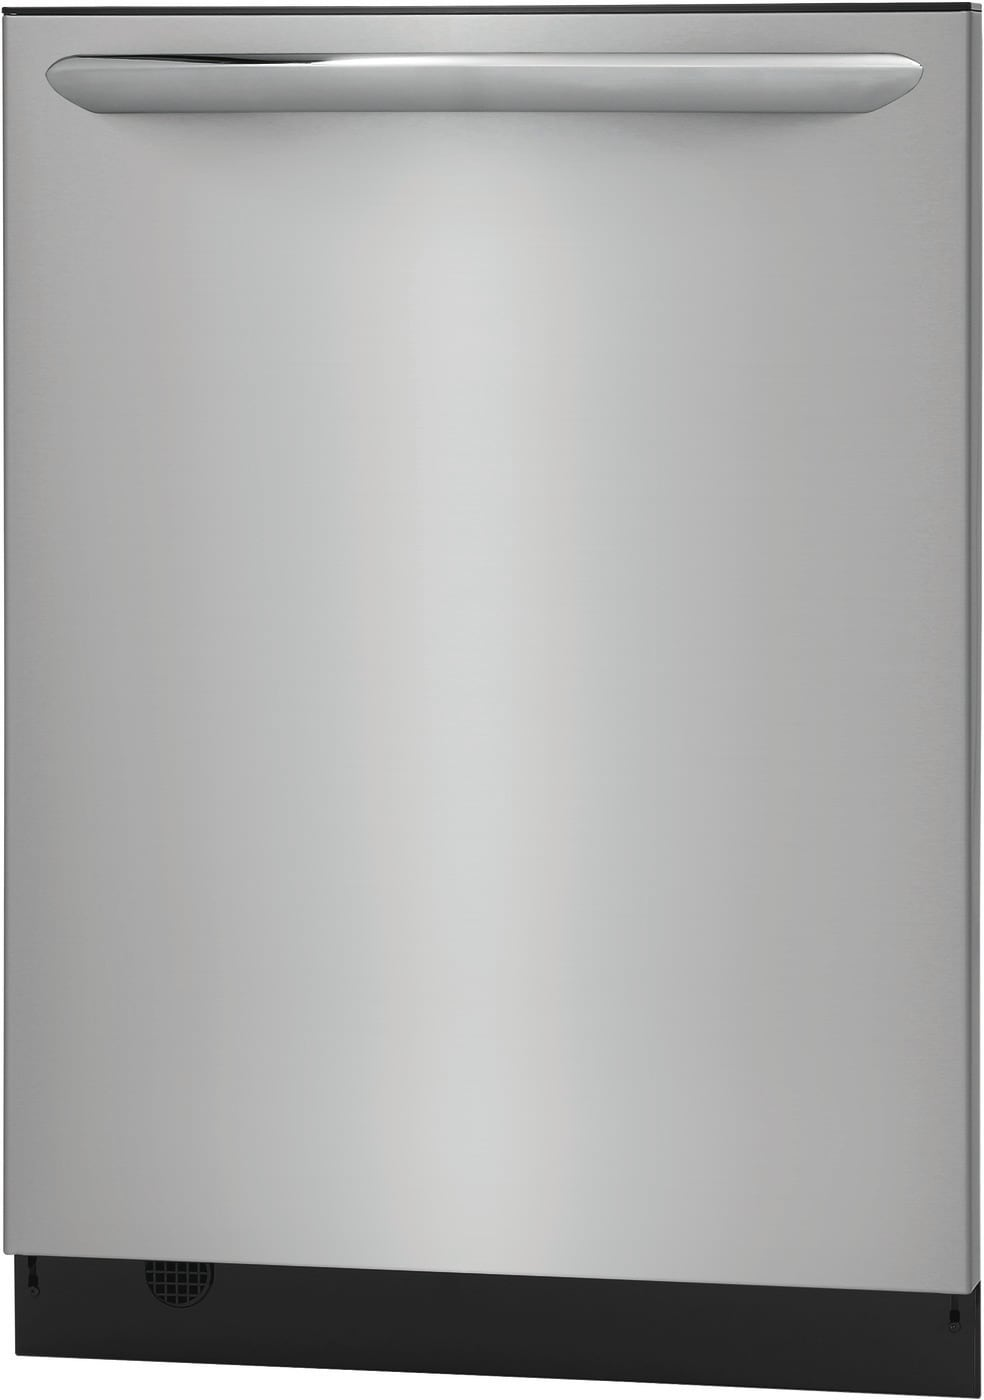 "24"" Built-In Dishwasher with Dual OrbitClean® Wash System Stainless Steel FGID2468UF"